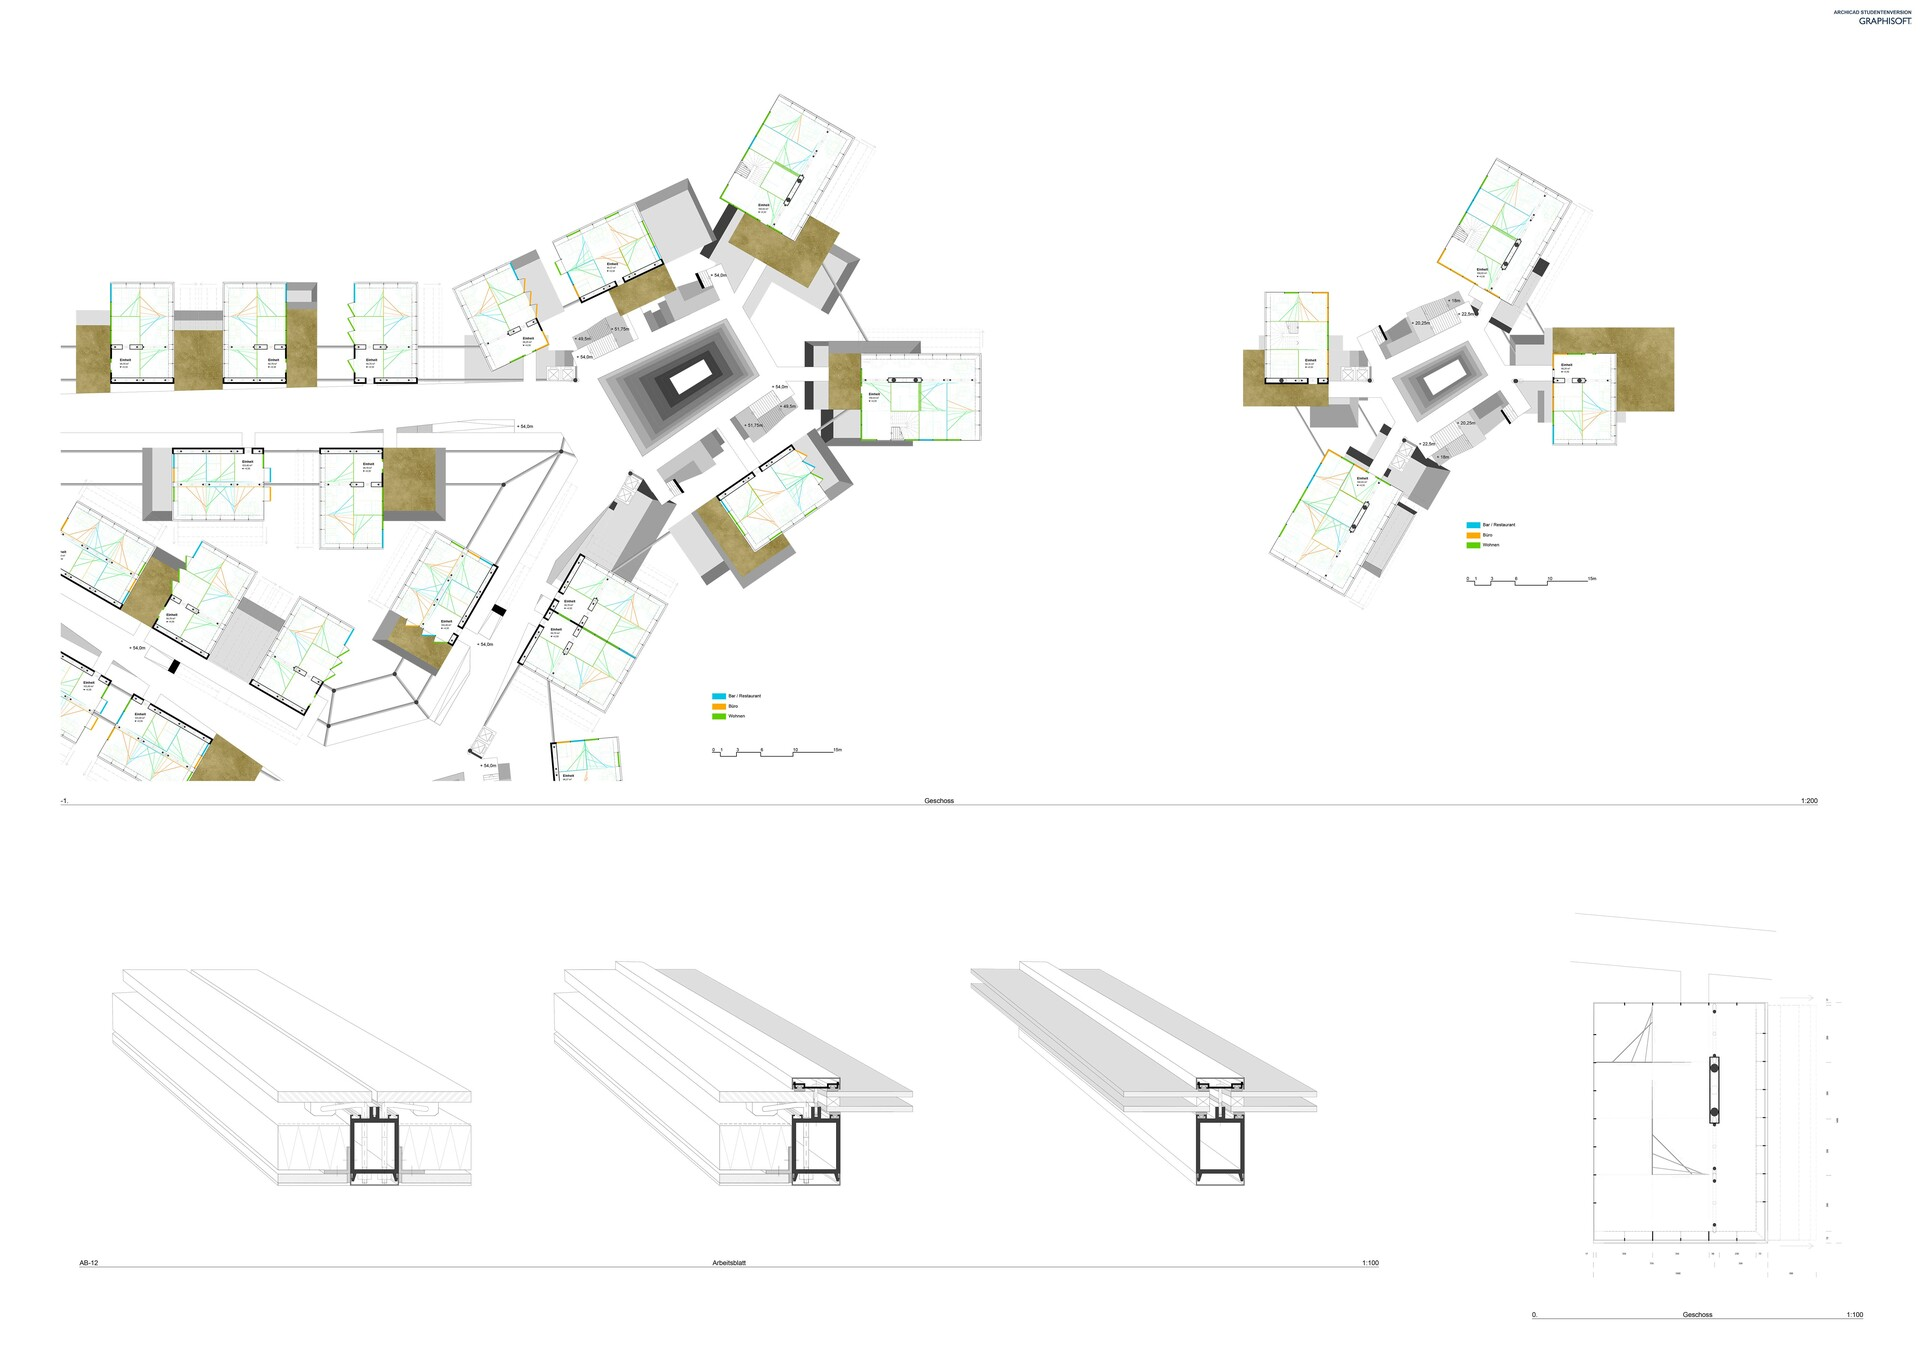 floor plans and beam construction